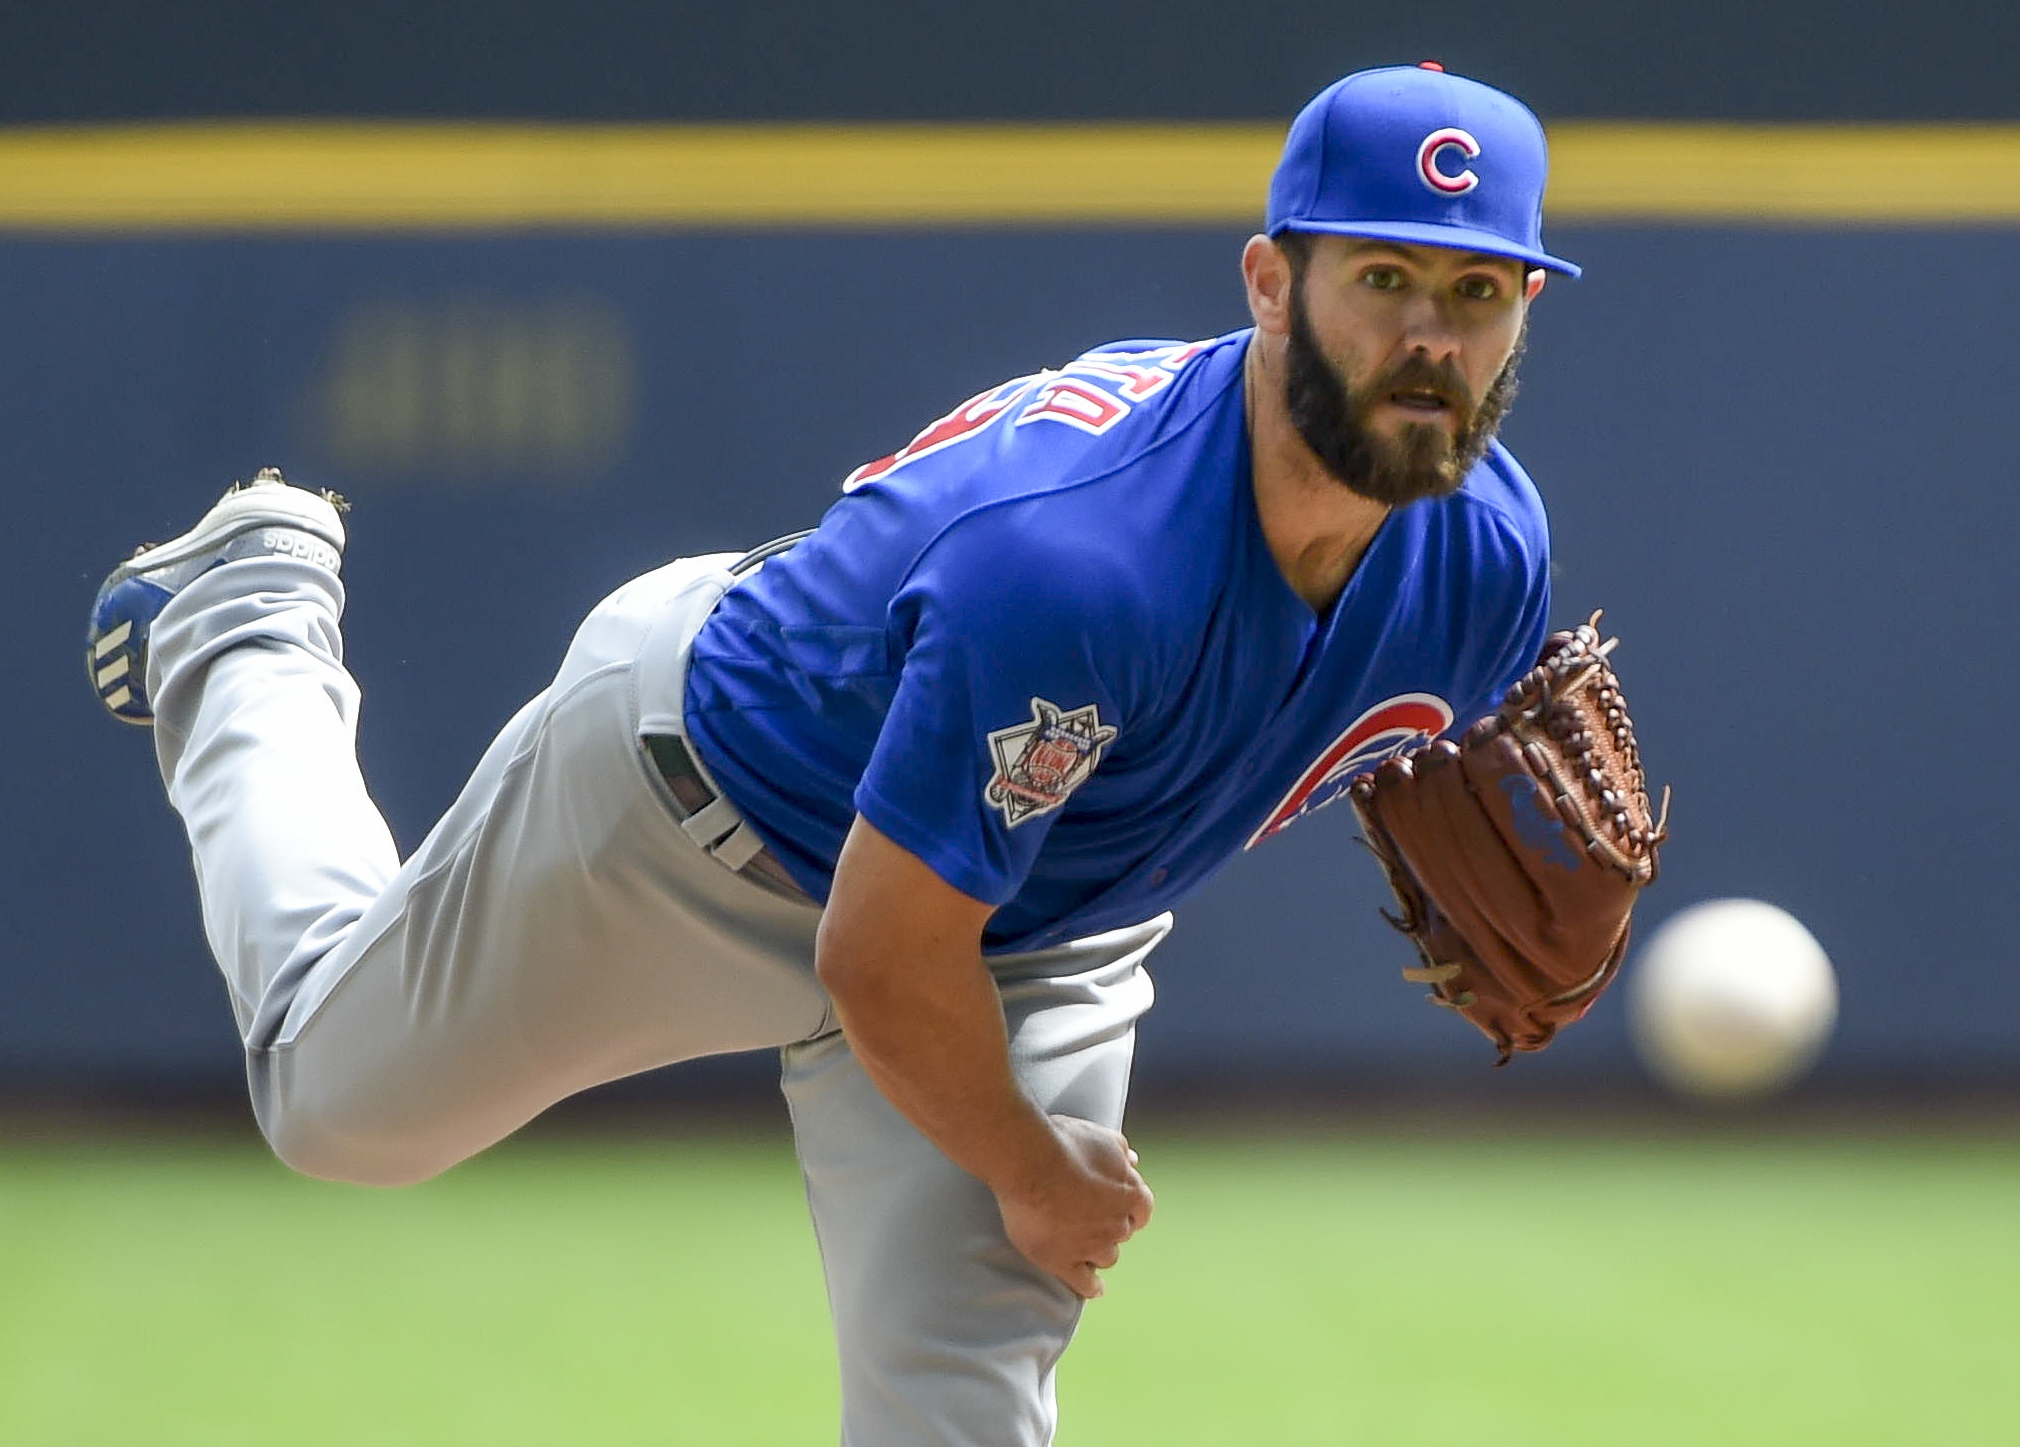 Apr 9, 2017; Milwaukee, WI, USA;  Chicago Cubs pitcher Jake Arrieta (49) pitches in the first inning against the Milwaukee Brewers at Miller Park. Mandatory Credit: Benny Sieu-USA TODAY Sports